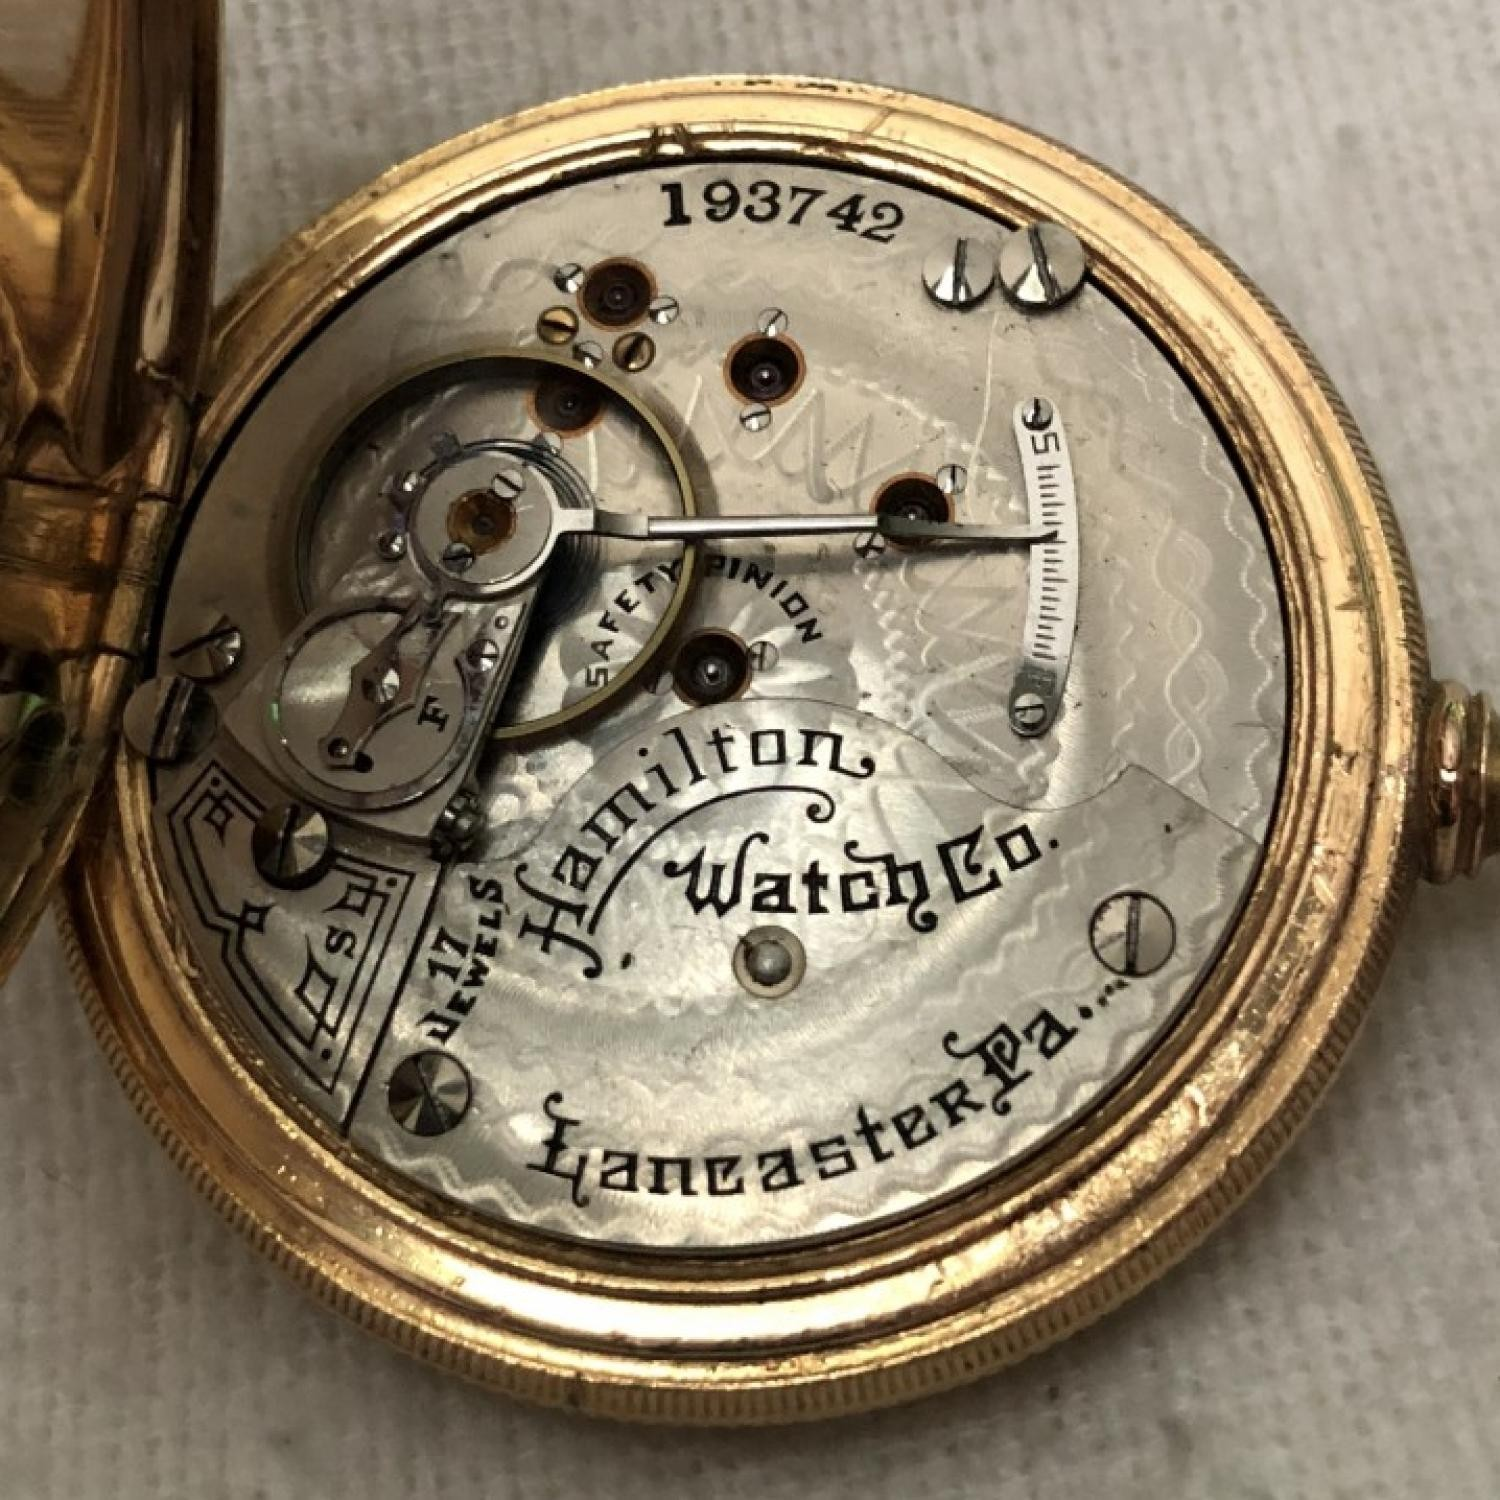 Image of Hamilton 925 #193742 Movement